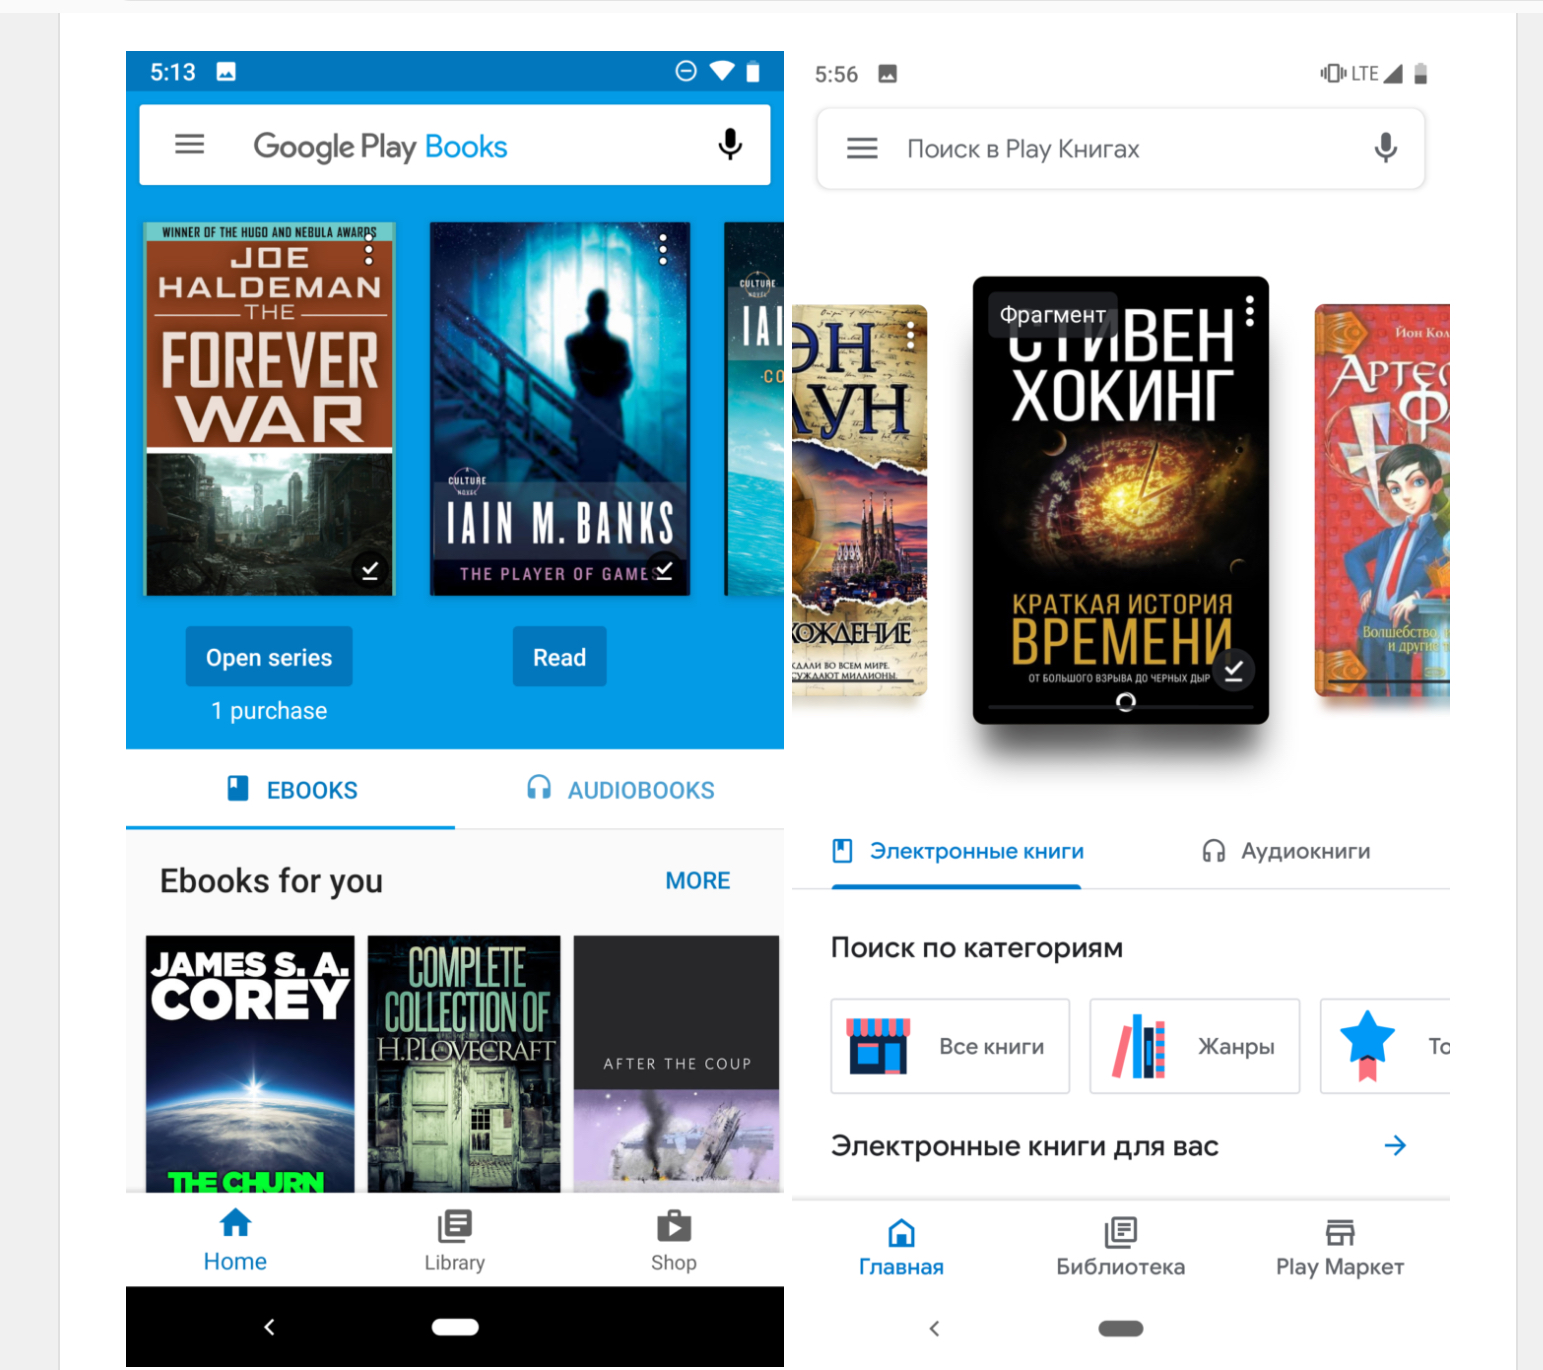 Google Play Books Ebook